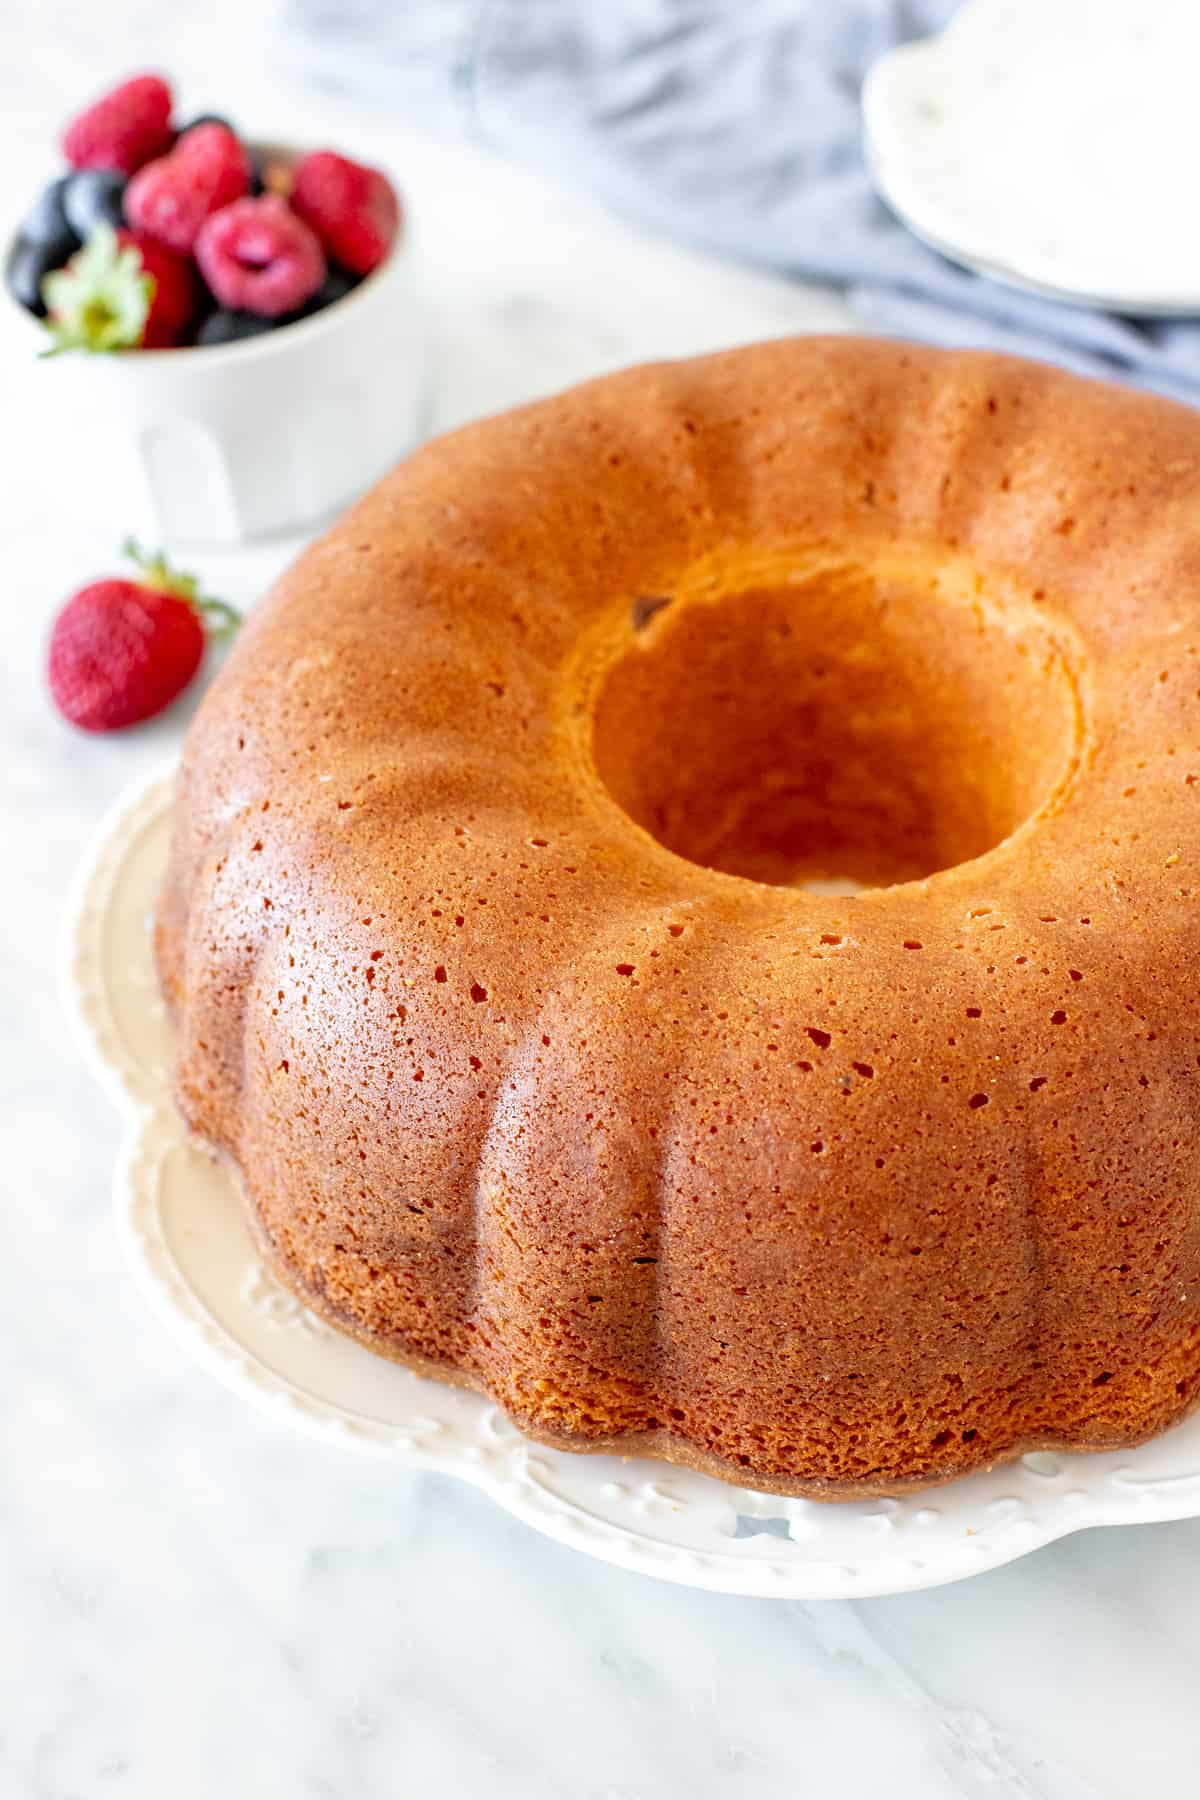 Cream cheese pound cake with a golden crust.